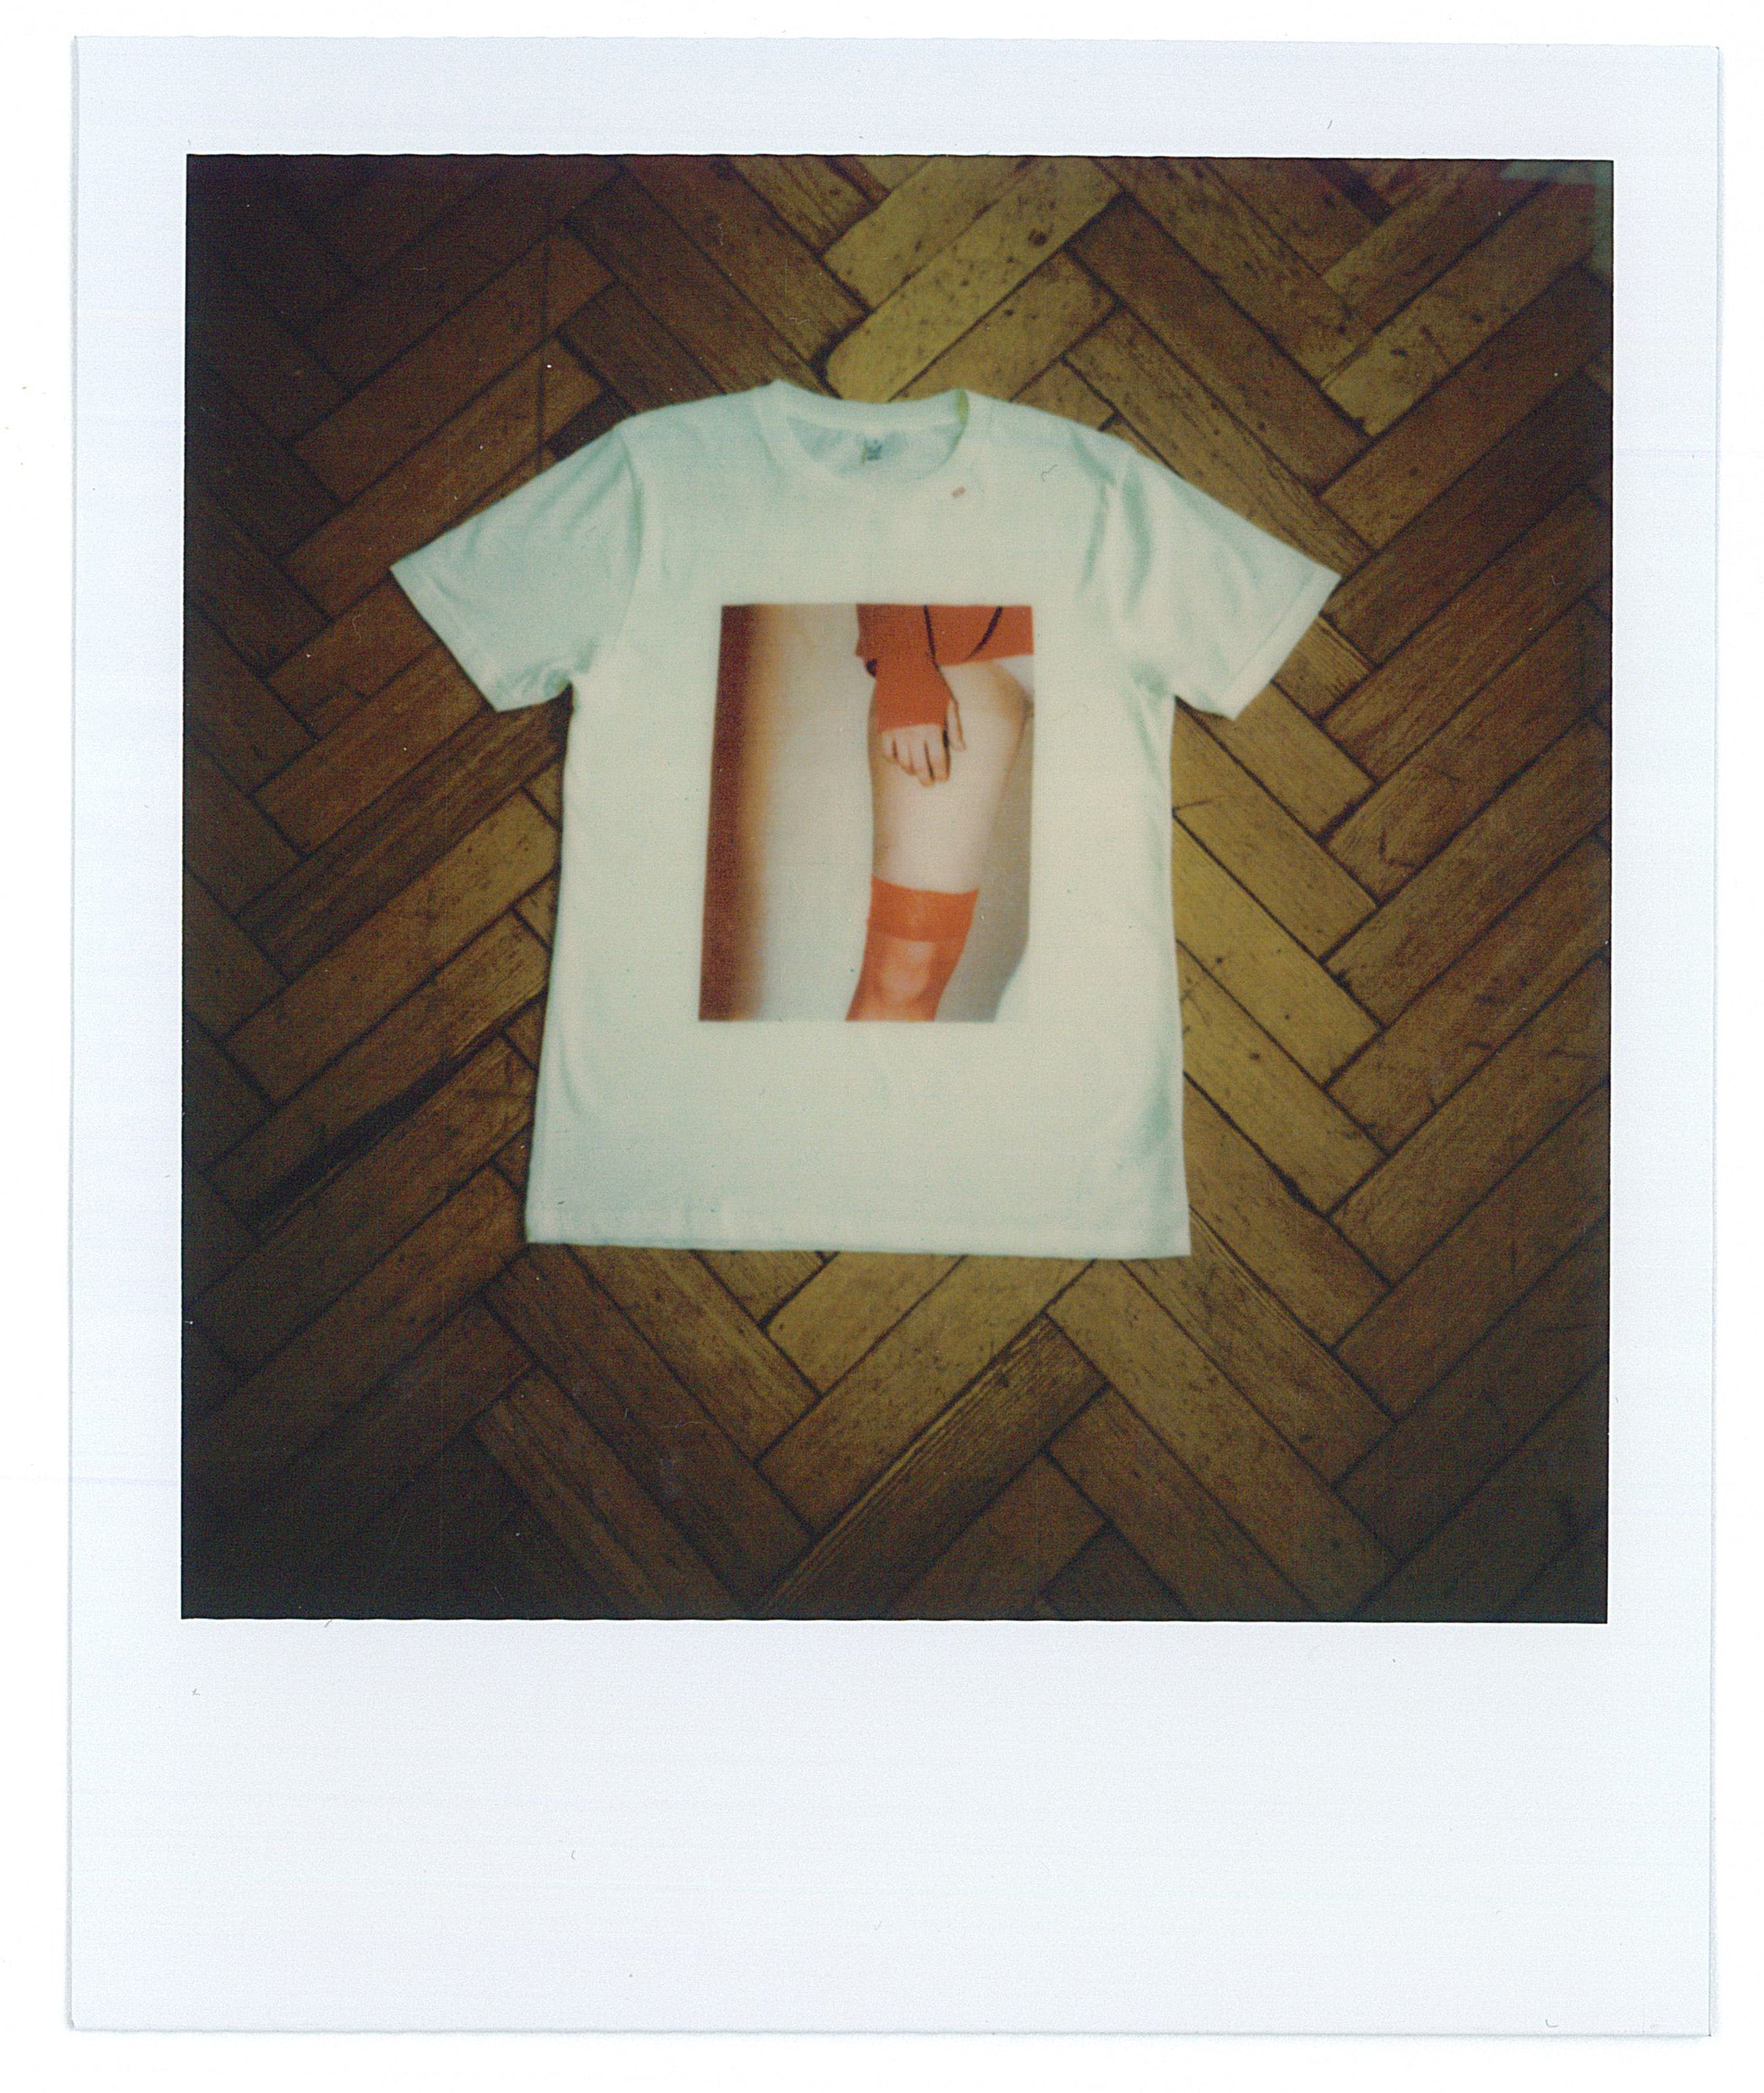 LIMITED EDITION WHITE SHORT SLEEVE T-SHIRT IMAGE A